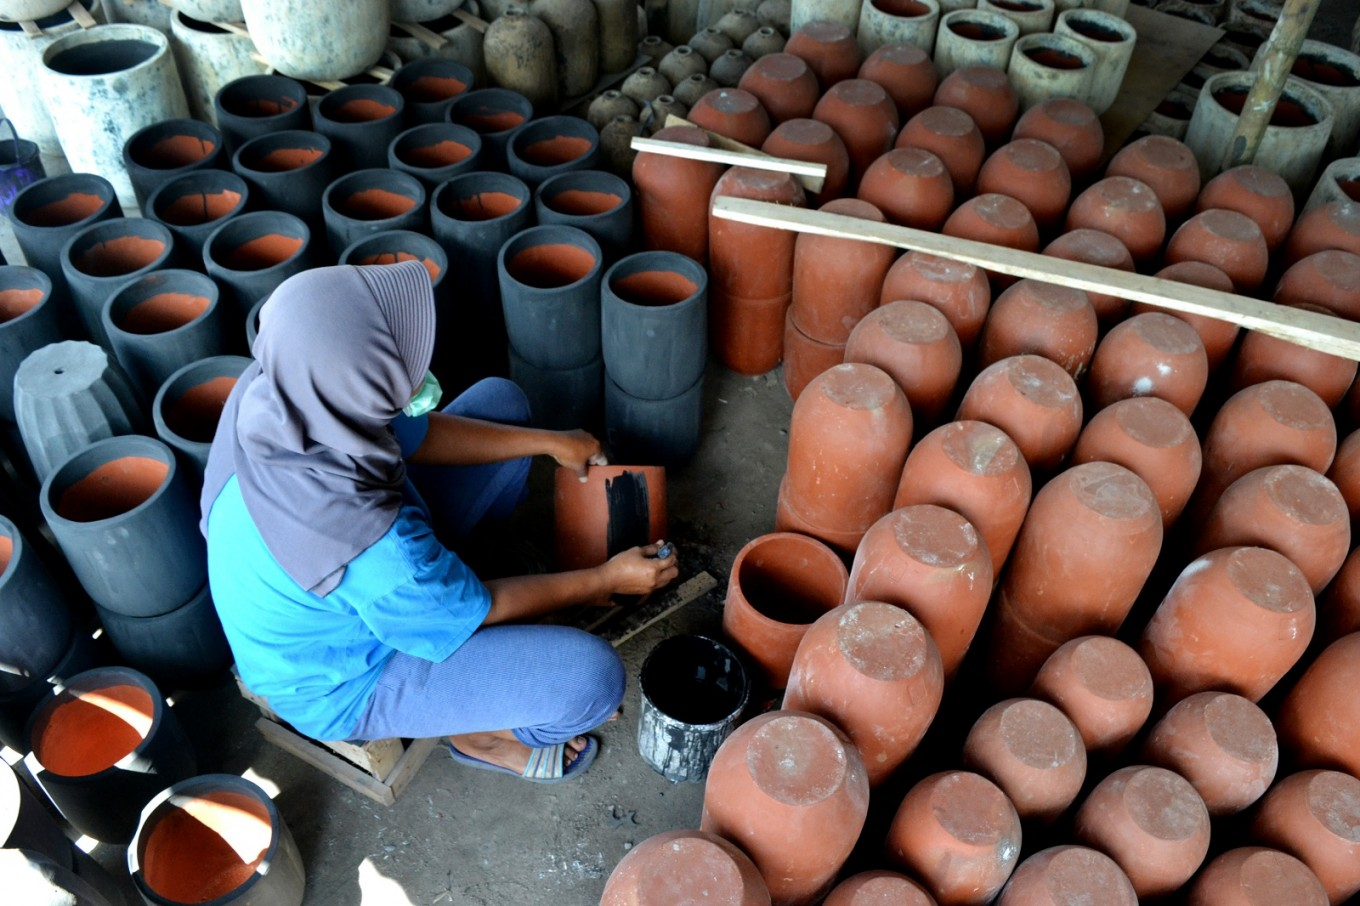 A worker adds color to rustic-style pottery.